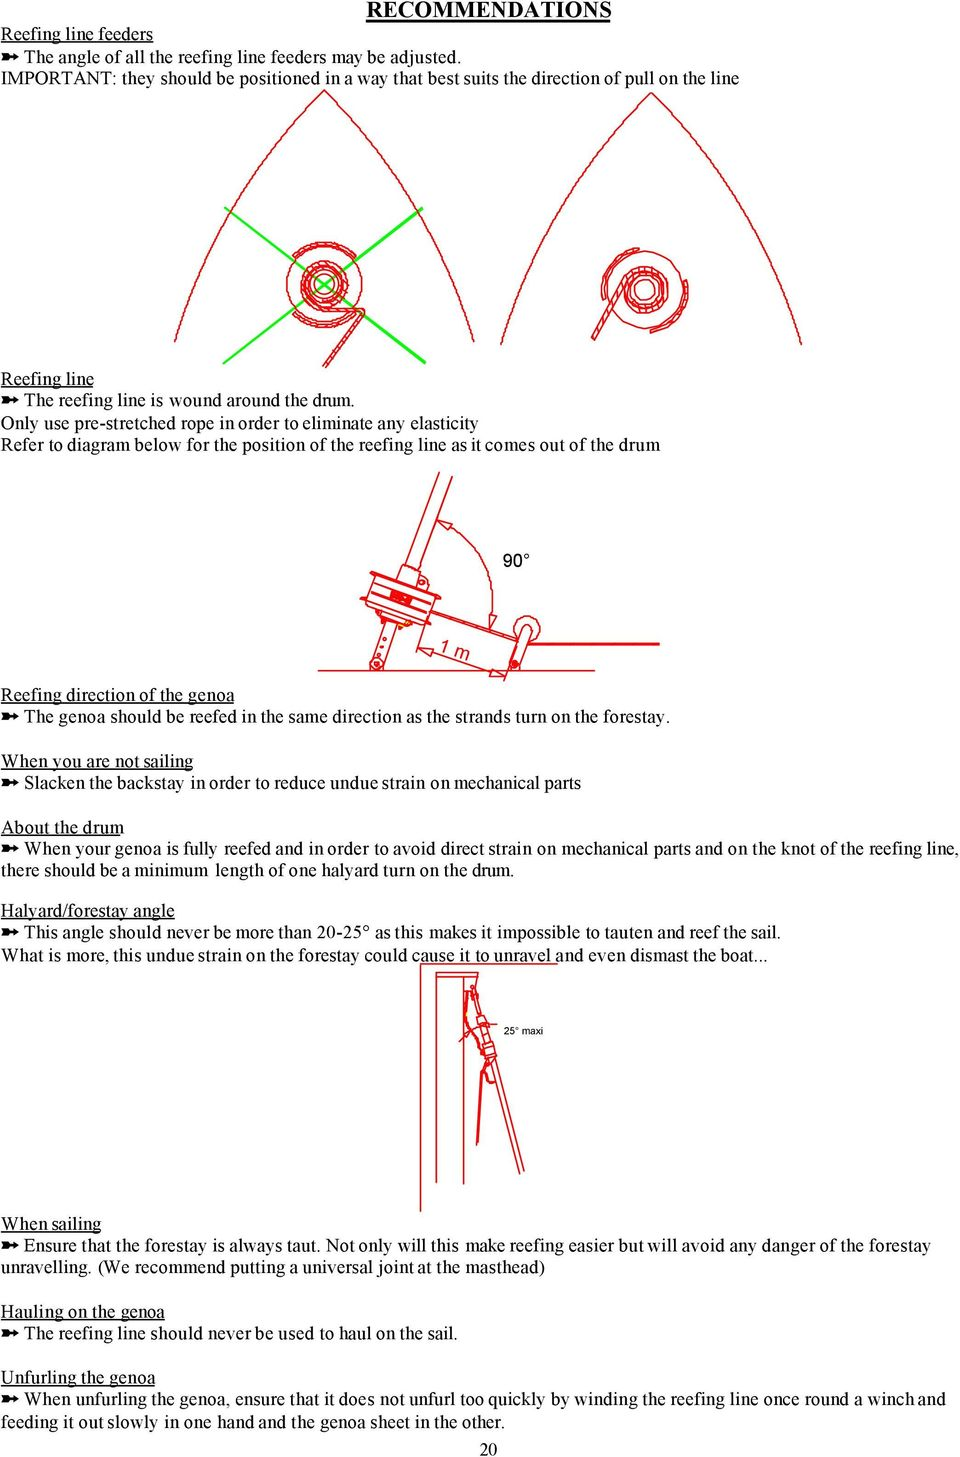 Plastimo Jib Reefing Systems S Series 406 608 810 Pdf Eastwood Guitar Wiring Diagram Only Use Pre Stretched Rope In Order To Eliminate Any Elasticity Refer Below